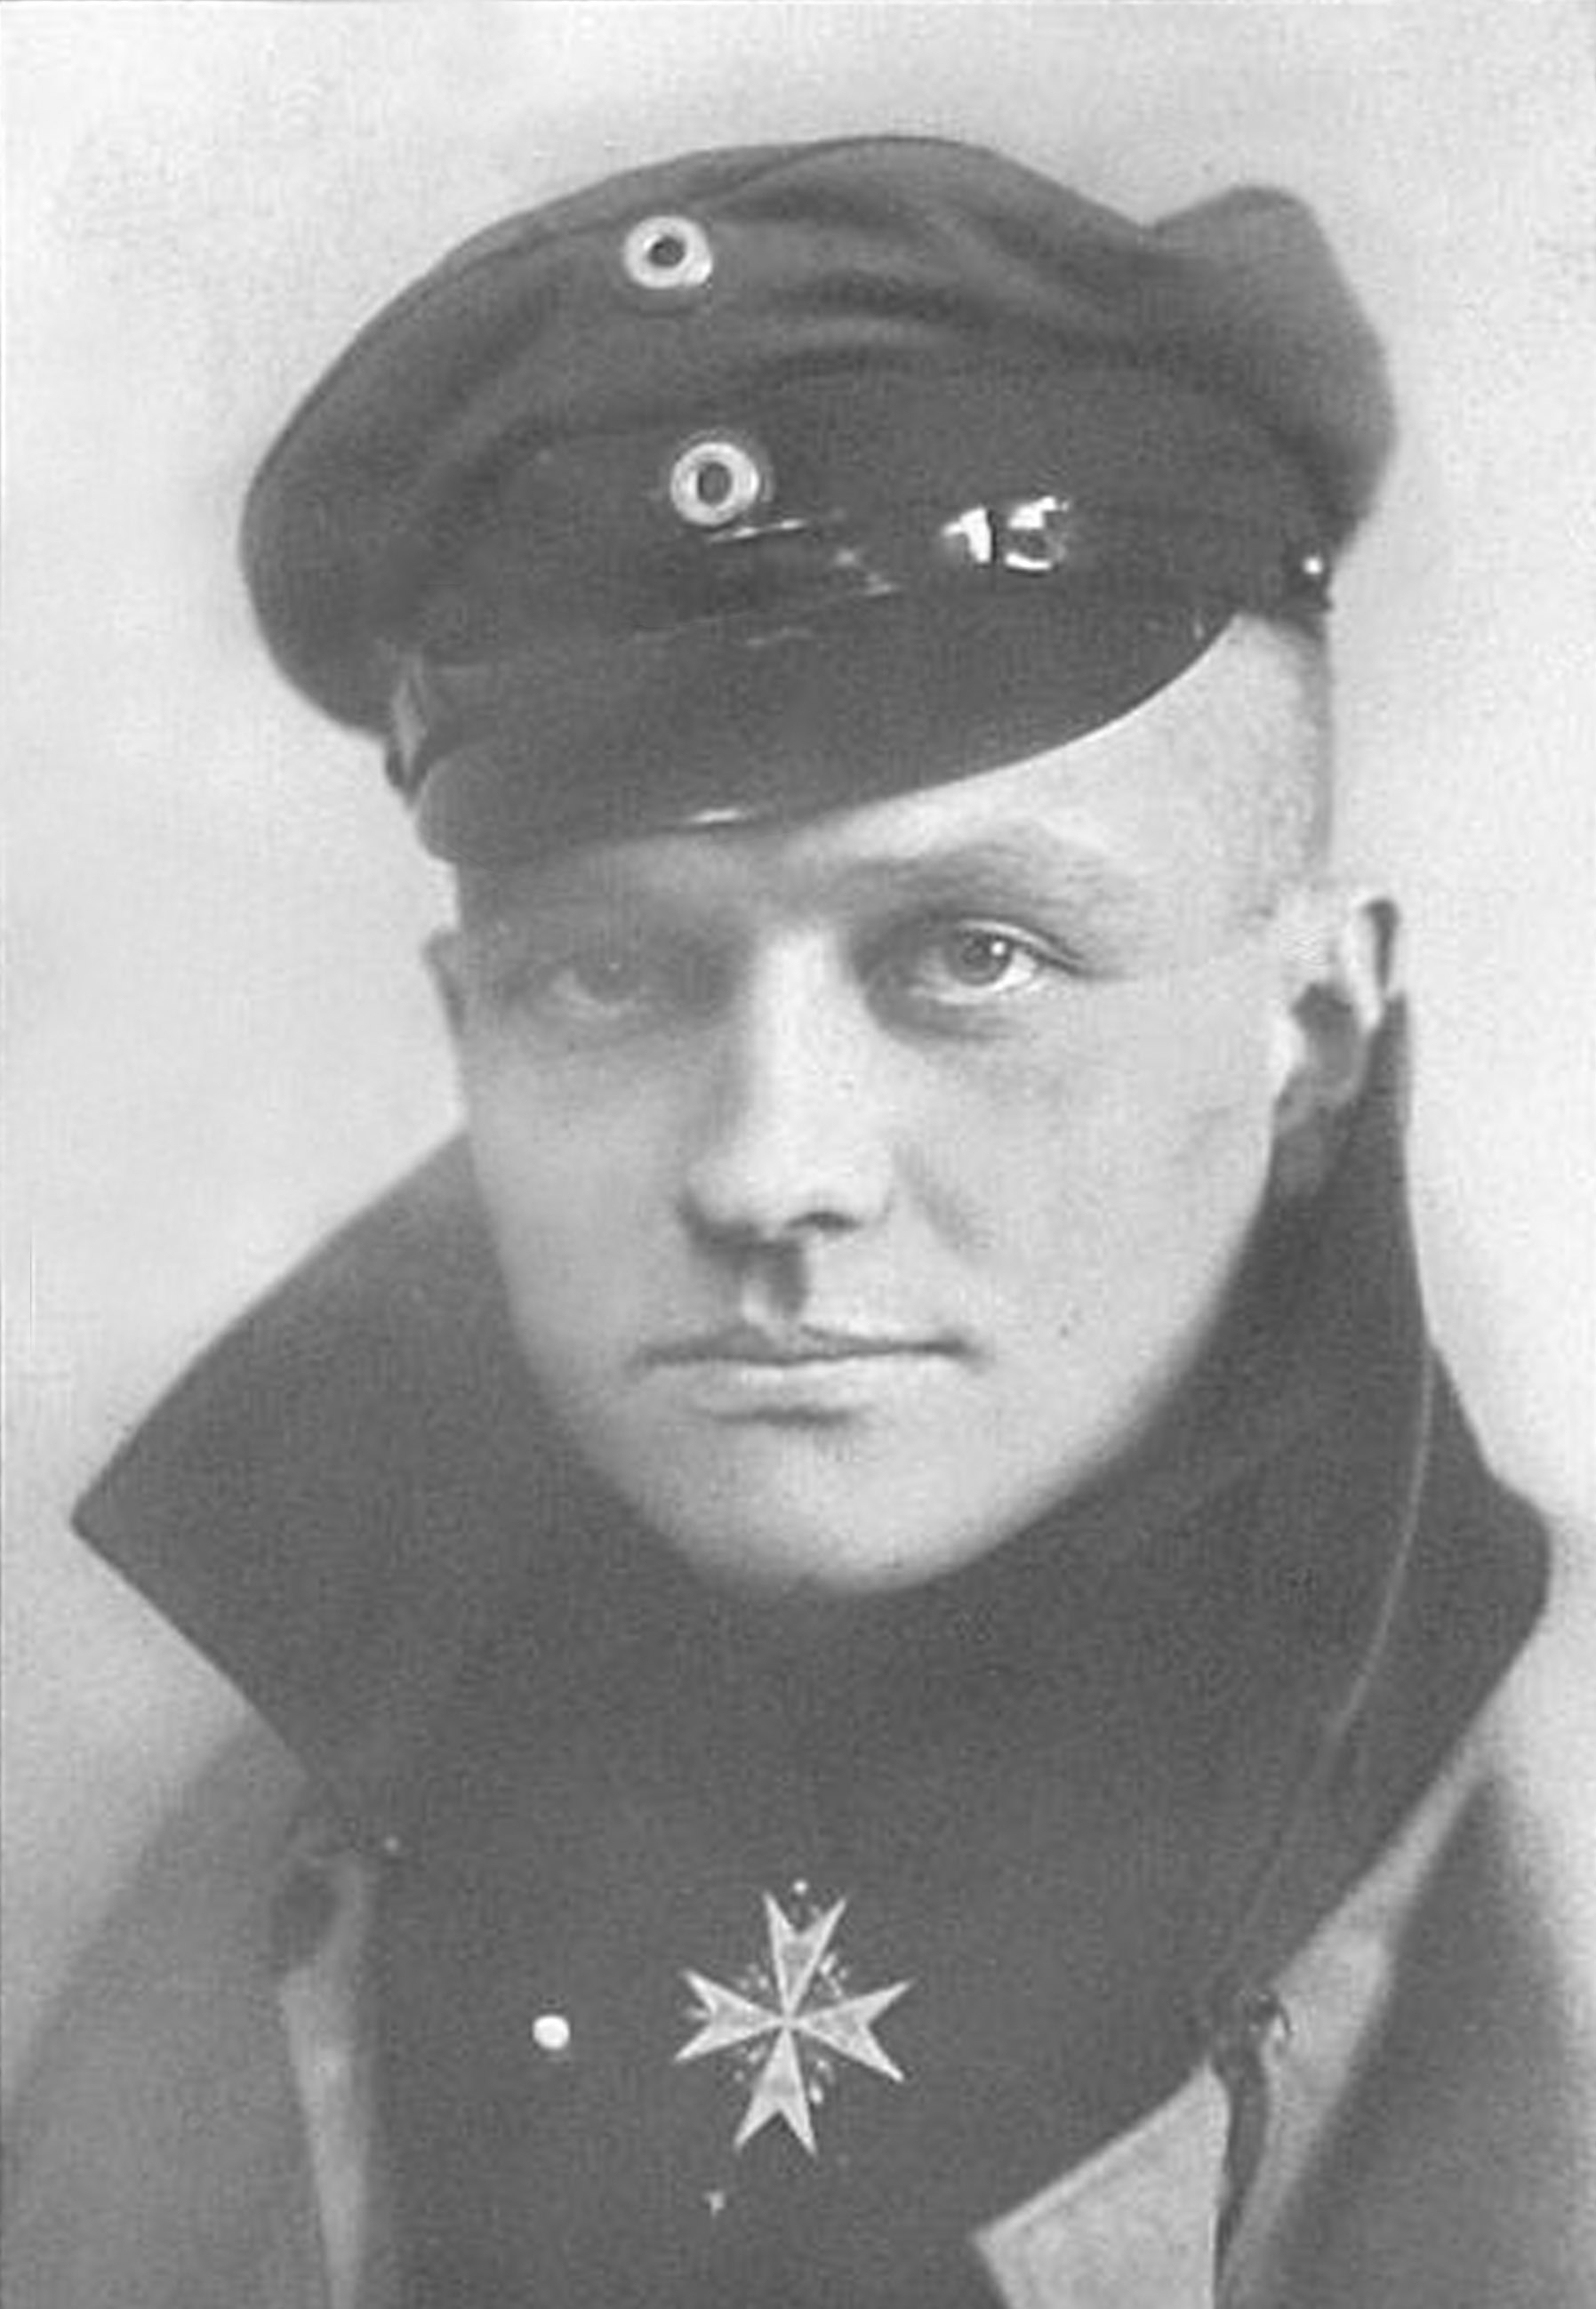 Manfred Von Richtofen – The Red Baron